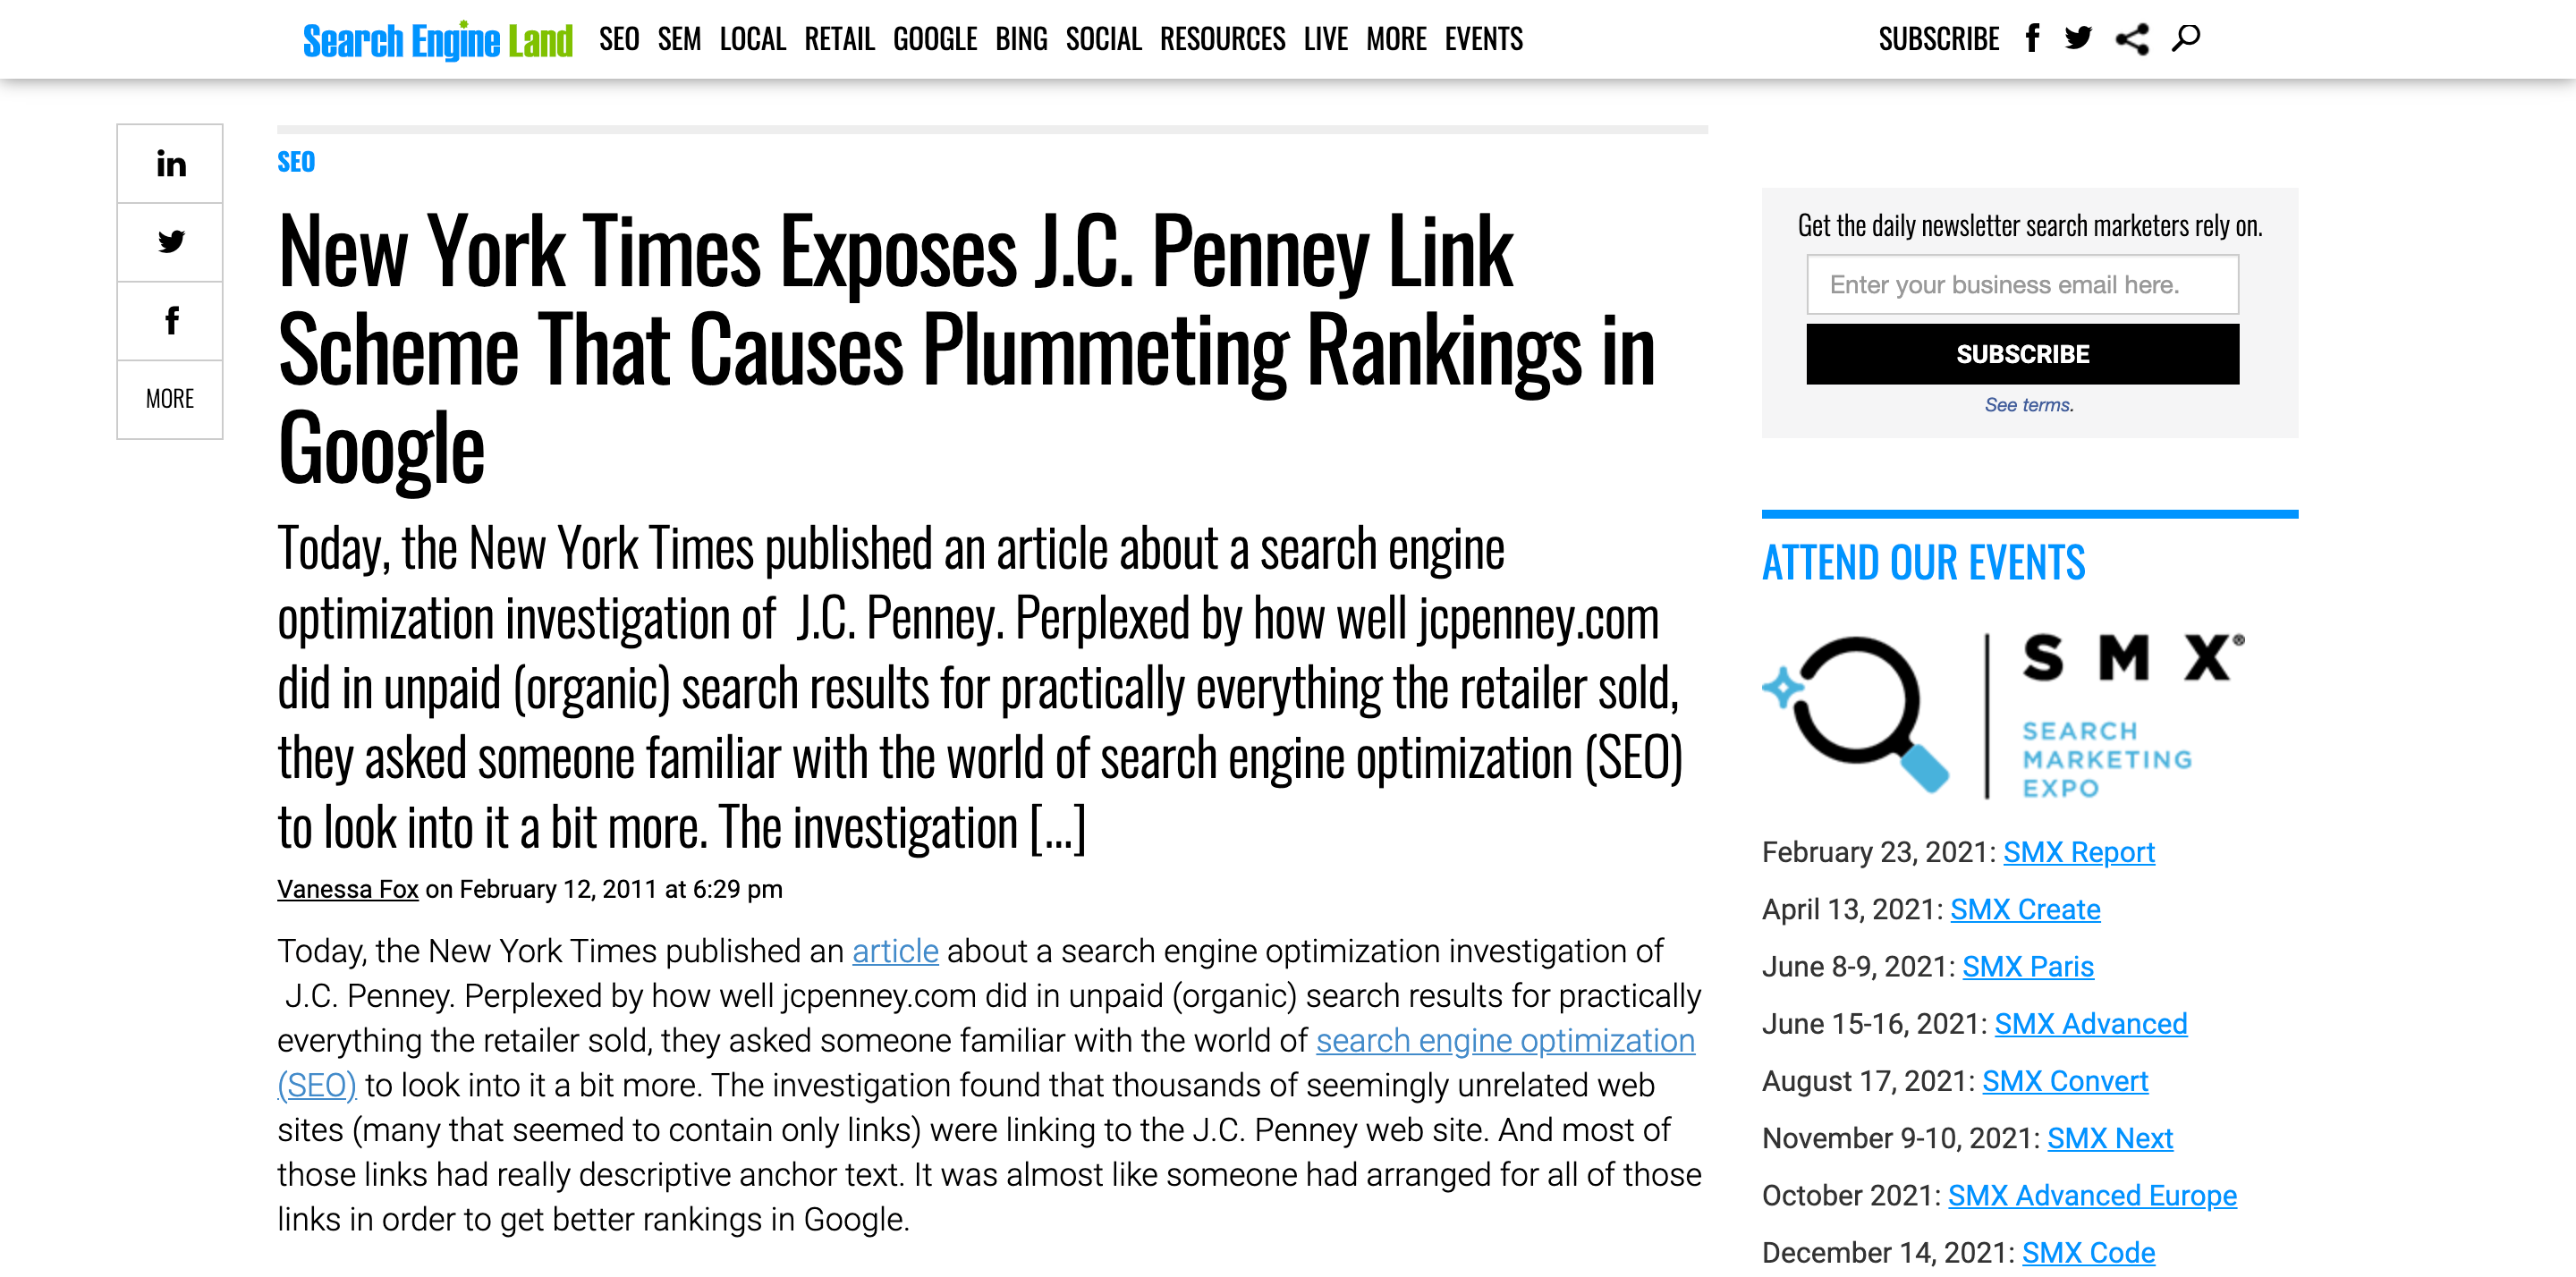 New-York-Times-Exposes-J-C-Penney-Link-Scheme-That-Causes-Plummeting-Rankings-in-Google - Agency Jet